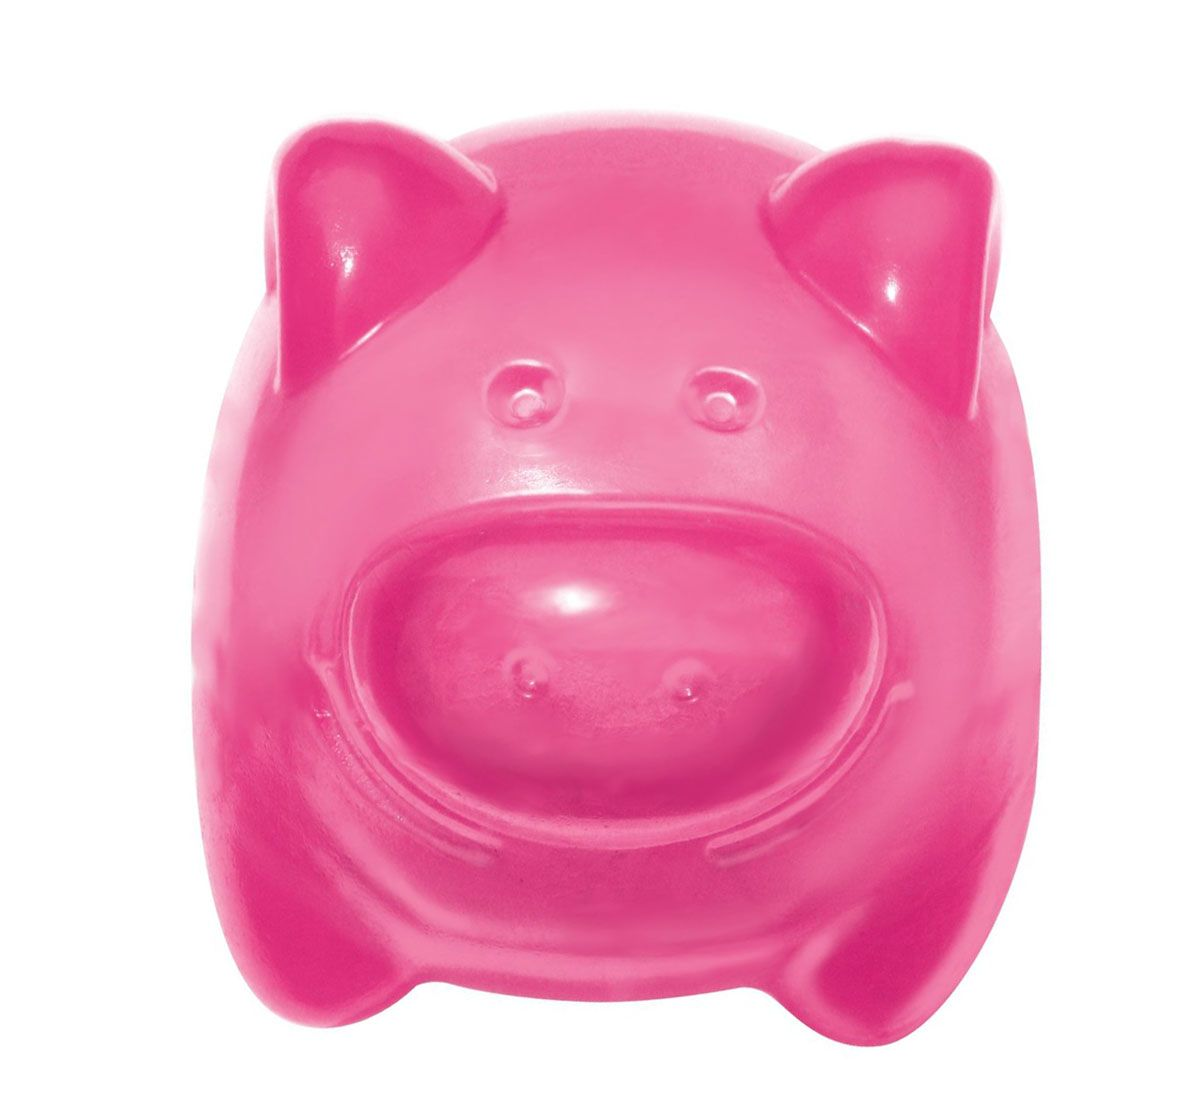 Kong Squeezz Jels Pig Dog Toy Medium The Kong Squeezz Jels Pig